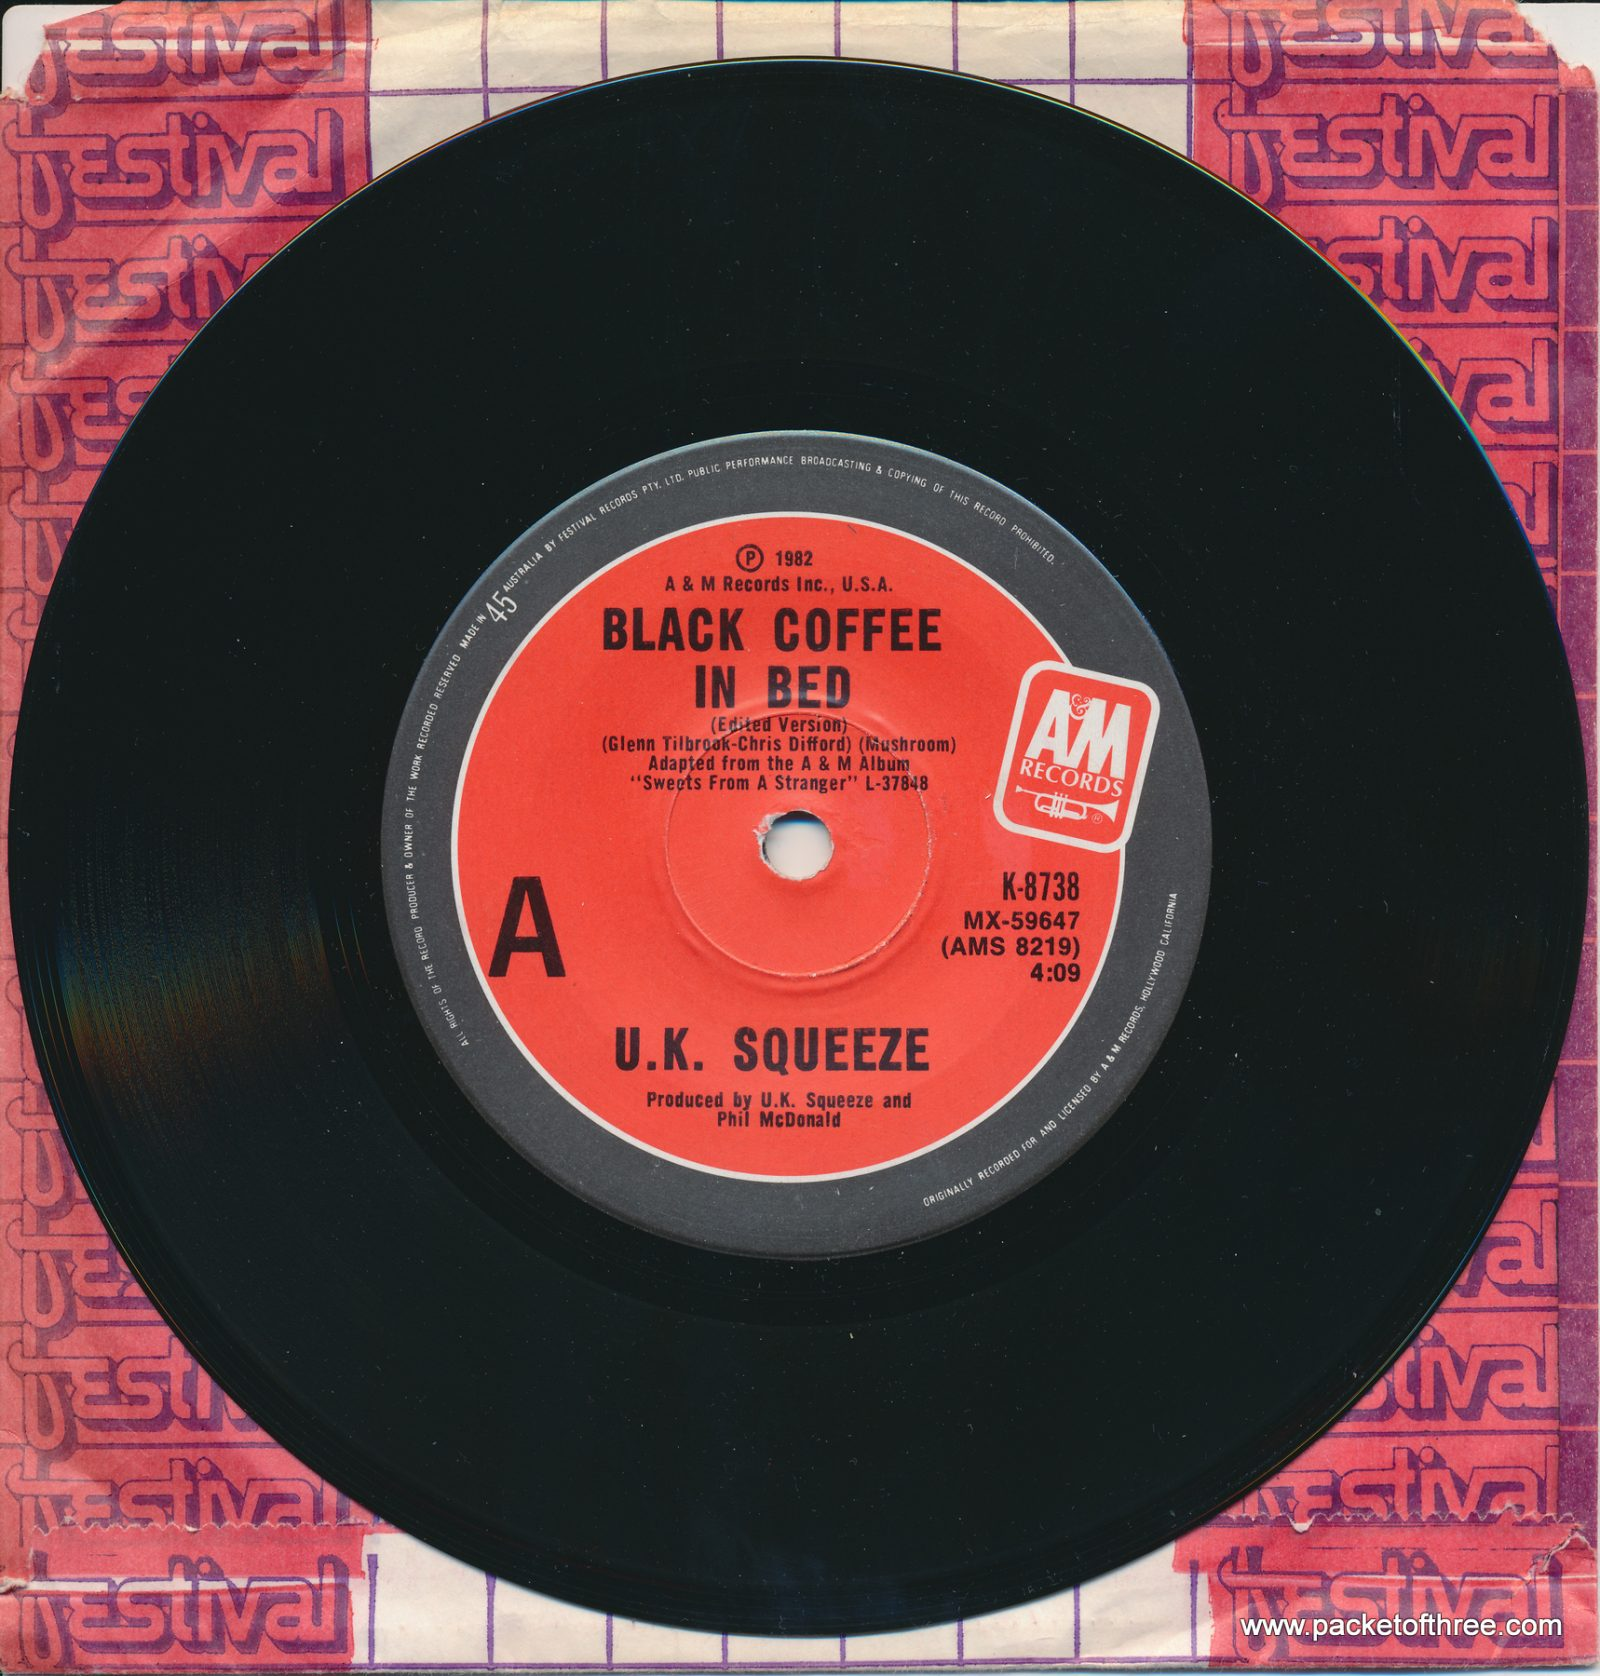 Black Coffee In Bed - Australia - 7""